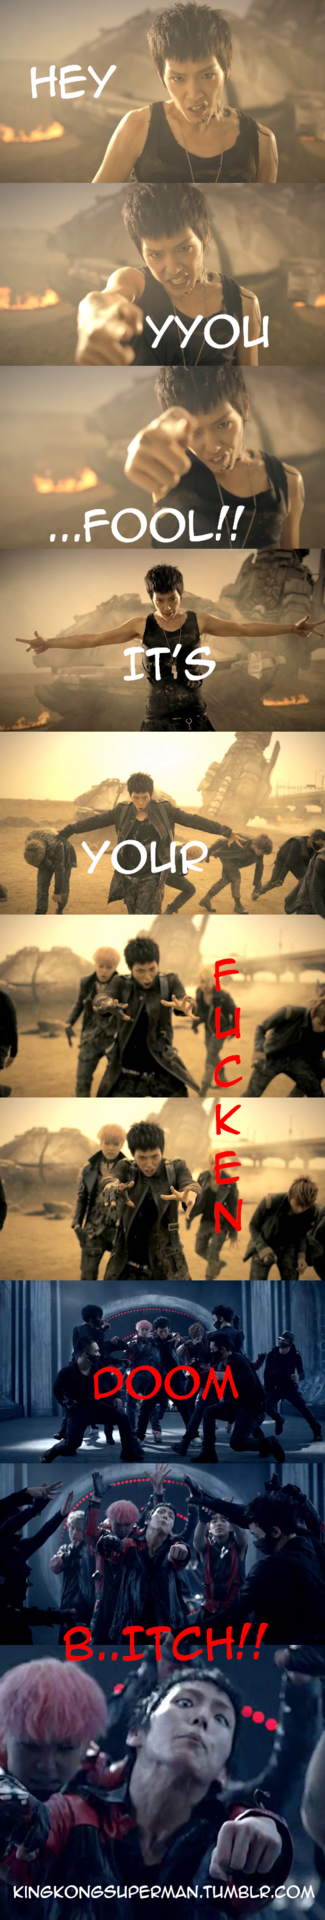 Oh my lame macro…..lol.